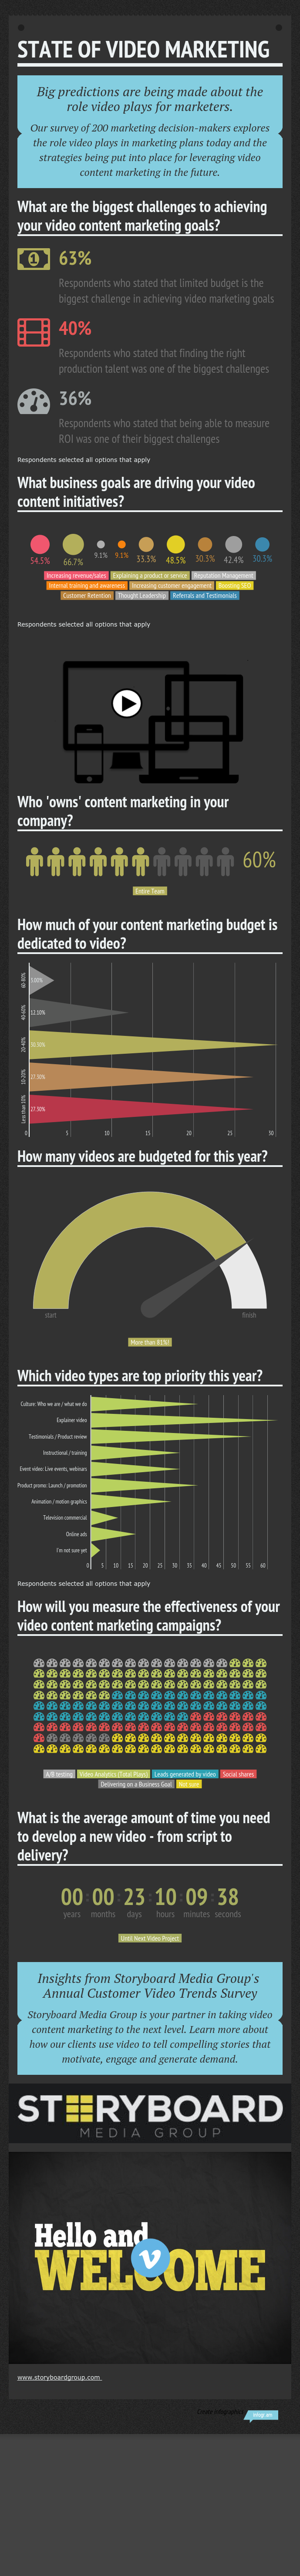 STATE_OF_VIDEO_MARKETING